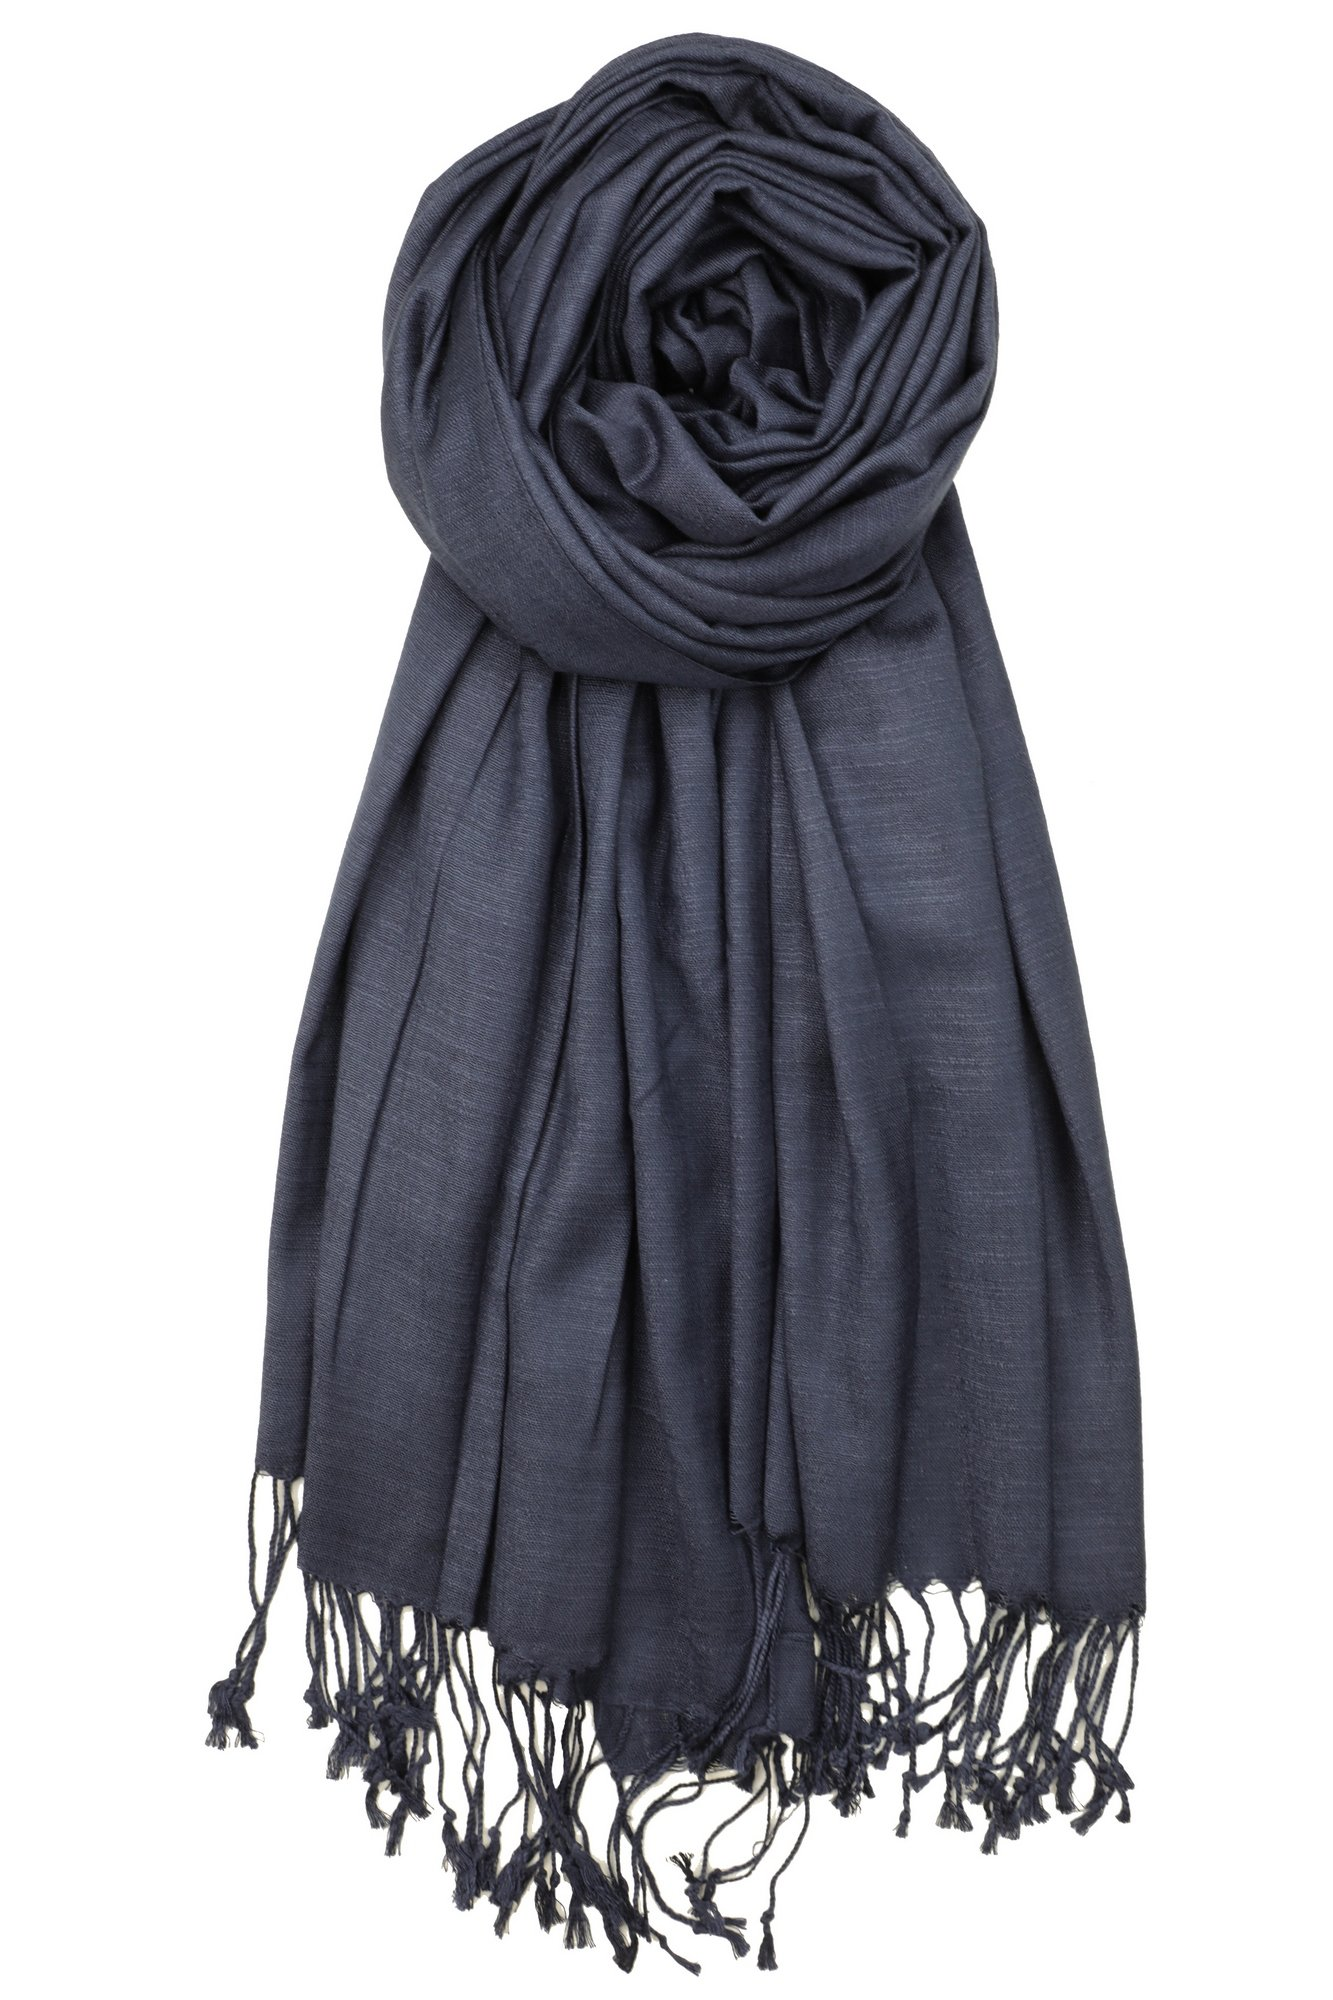 Achillea Bamboo Rayon Feel Soft Silky Pashmina Solid Shawl Wrap Scarf (Navy)